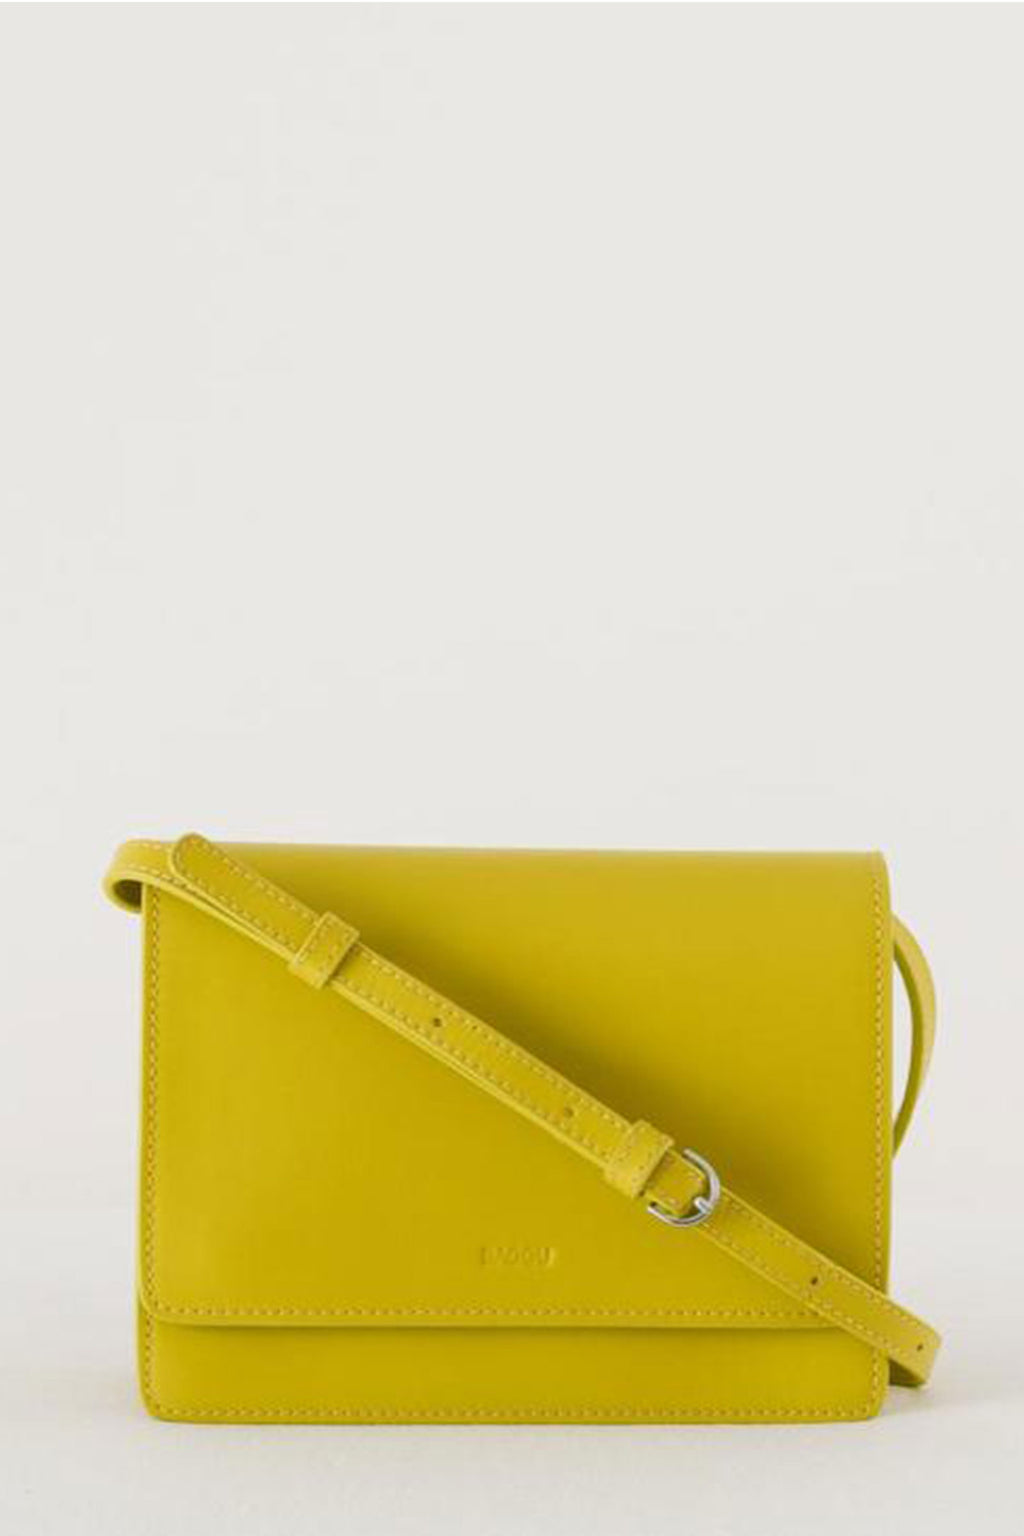 Baggu Small Structured Crossbody in Citron